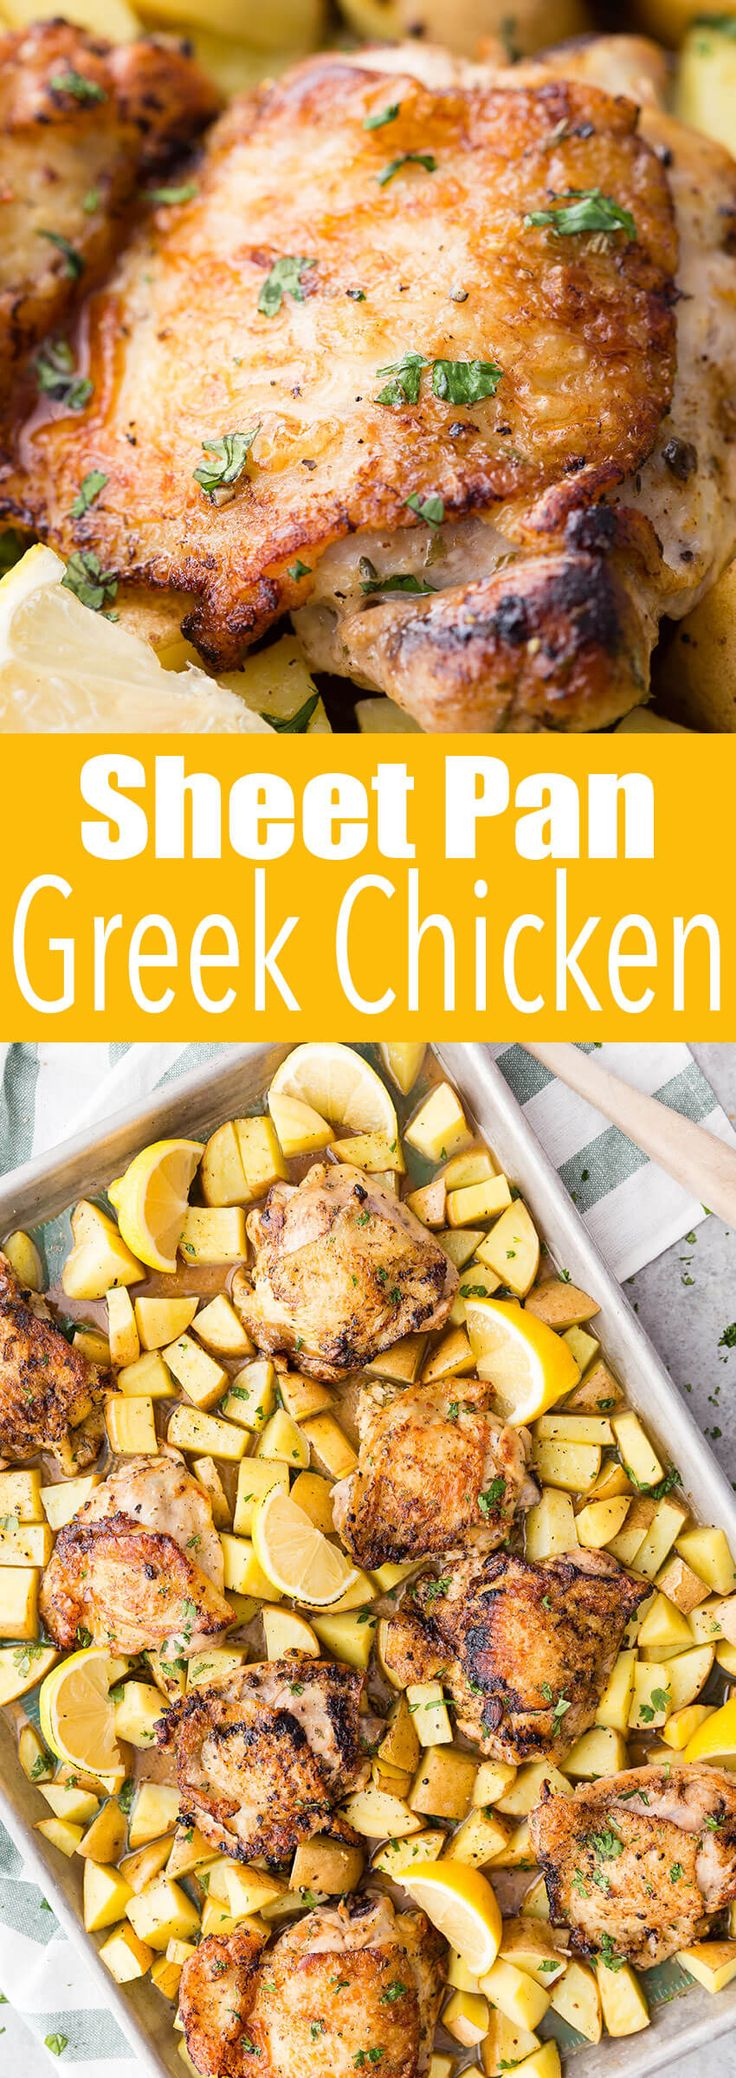 Easy to make sheet pan greek chicken thighs with potatoes. This is a really delicious dinner.  #chicken #chickendinner #sheetpandinner #sheetpanchicken #greek #greekchicken